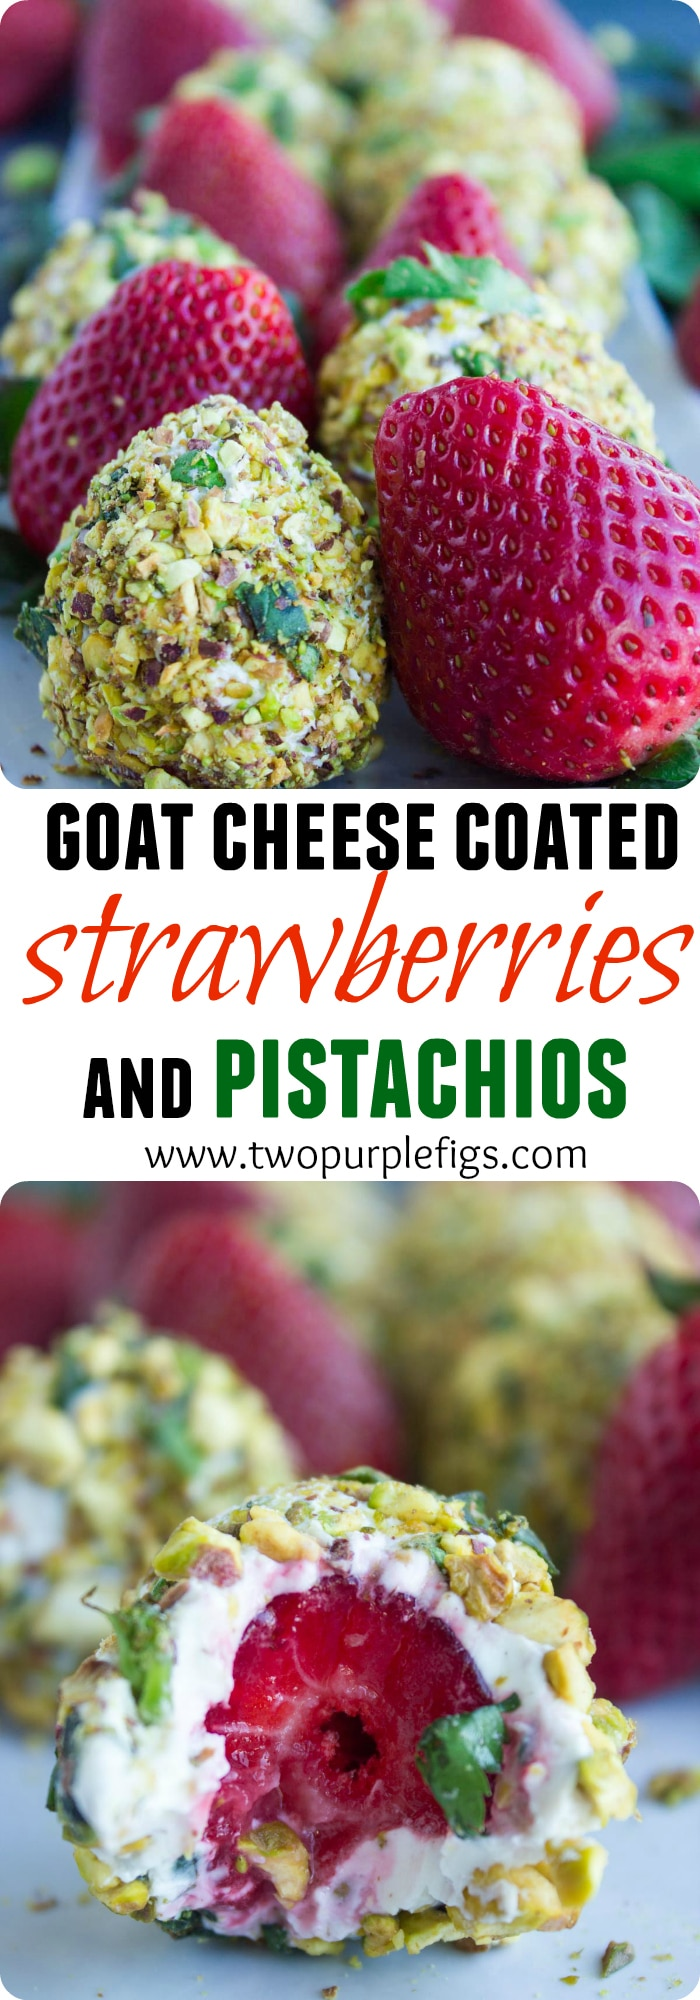 This recipe for Goat Cheese Pistachio Coated Strawberries is perfect for any festive occasion in spring and summer that requires a refreshing appetizer or some easy finger food. #appetizer, #strawberrierecipes, #fingerfood, #partyfood